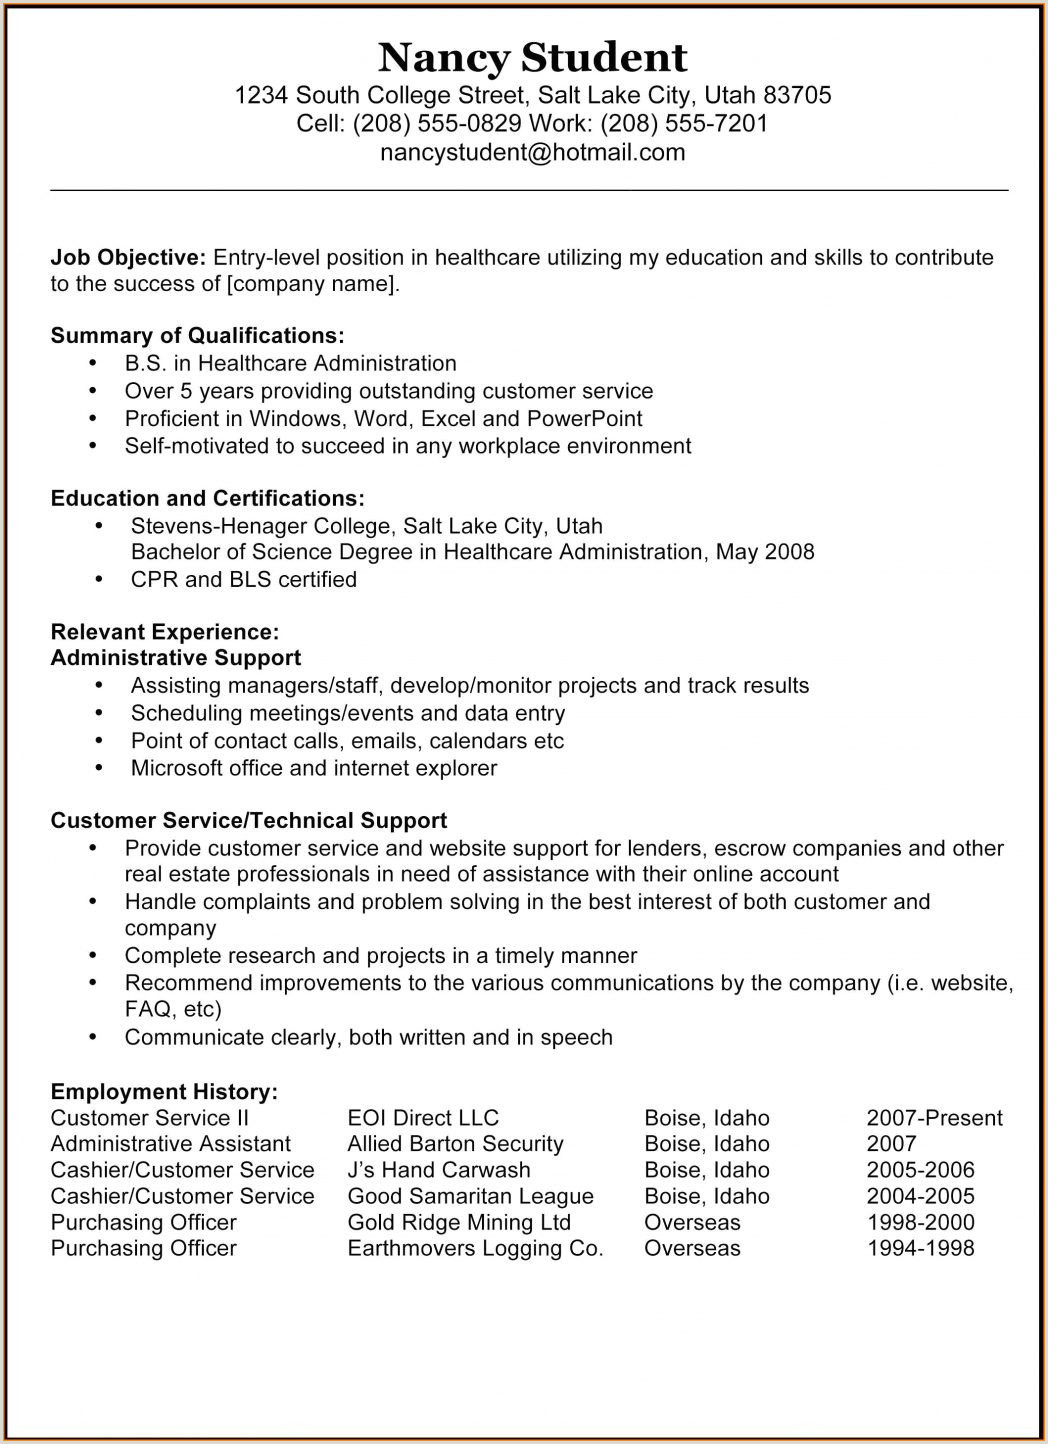 Sample Resume for Call Center without Experience Resume for Receptionist with No Experience Unique Nanny